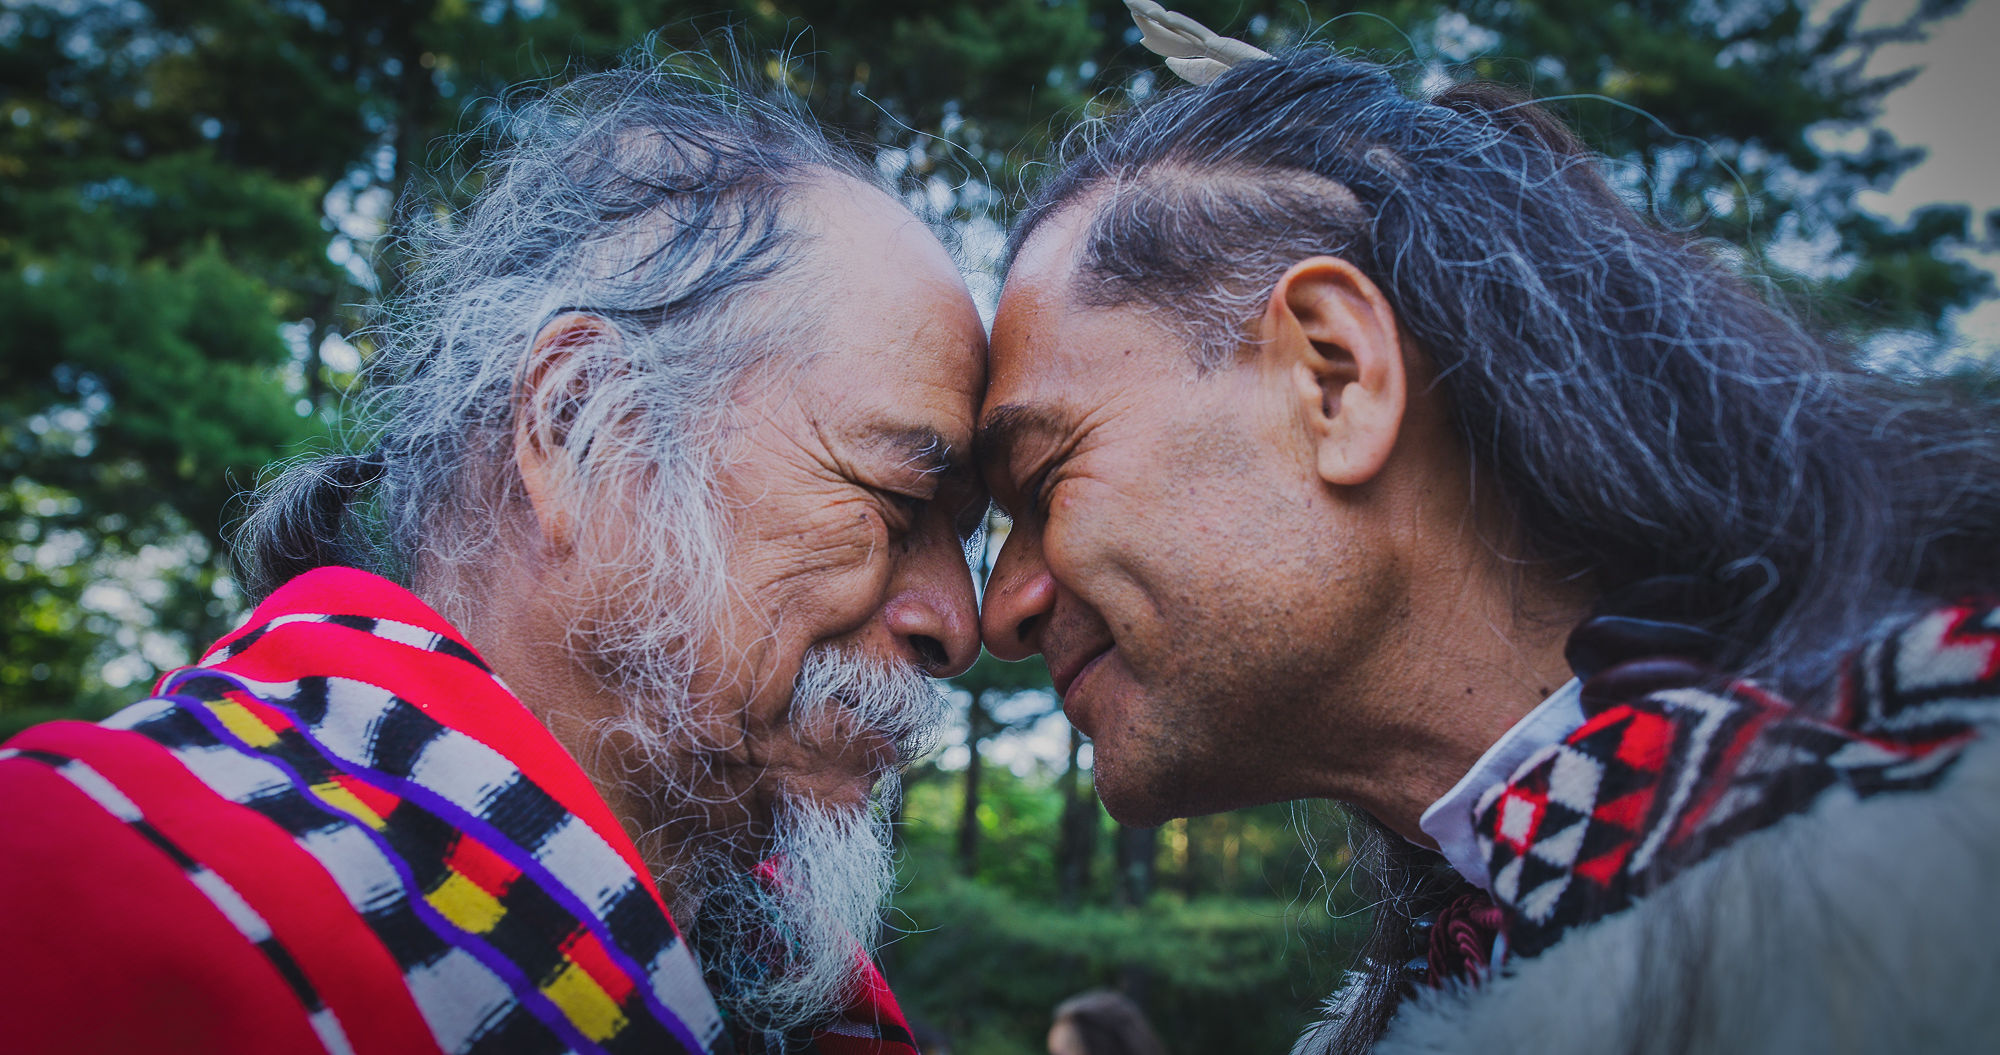 Experience the culture and traditions of over 20 different tribes from around the world.Listen to the wisdom of some of the most respected indigenous elders.Learn how to merge ancient philosophies and tribal concepts with Western society in order to thrive in unity and harmony with the Earth and all our relative. - CULTURal EXCHANGE